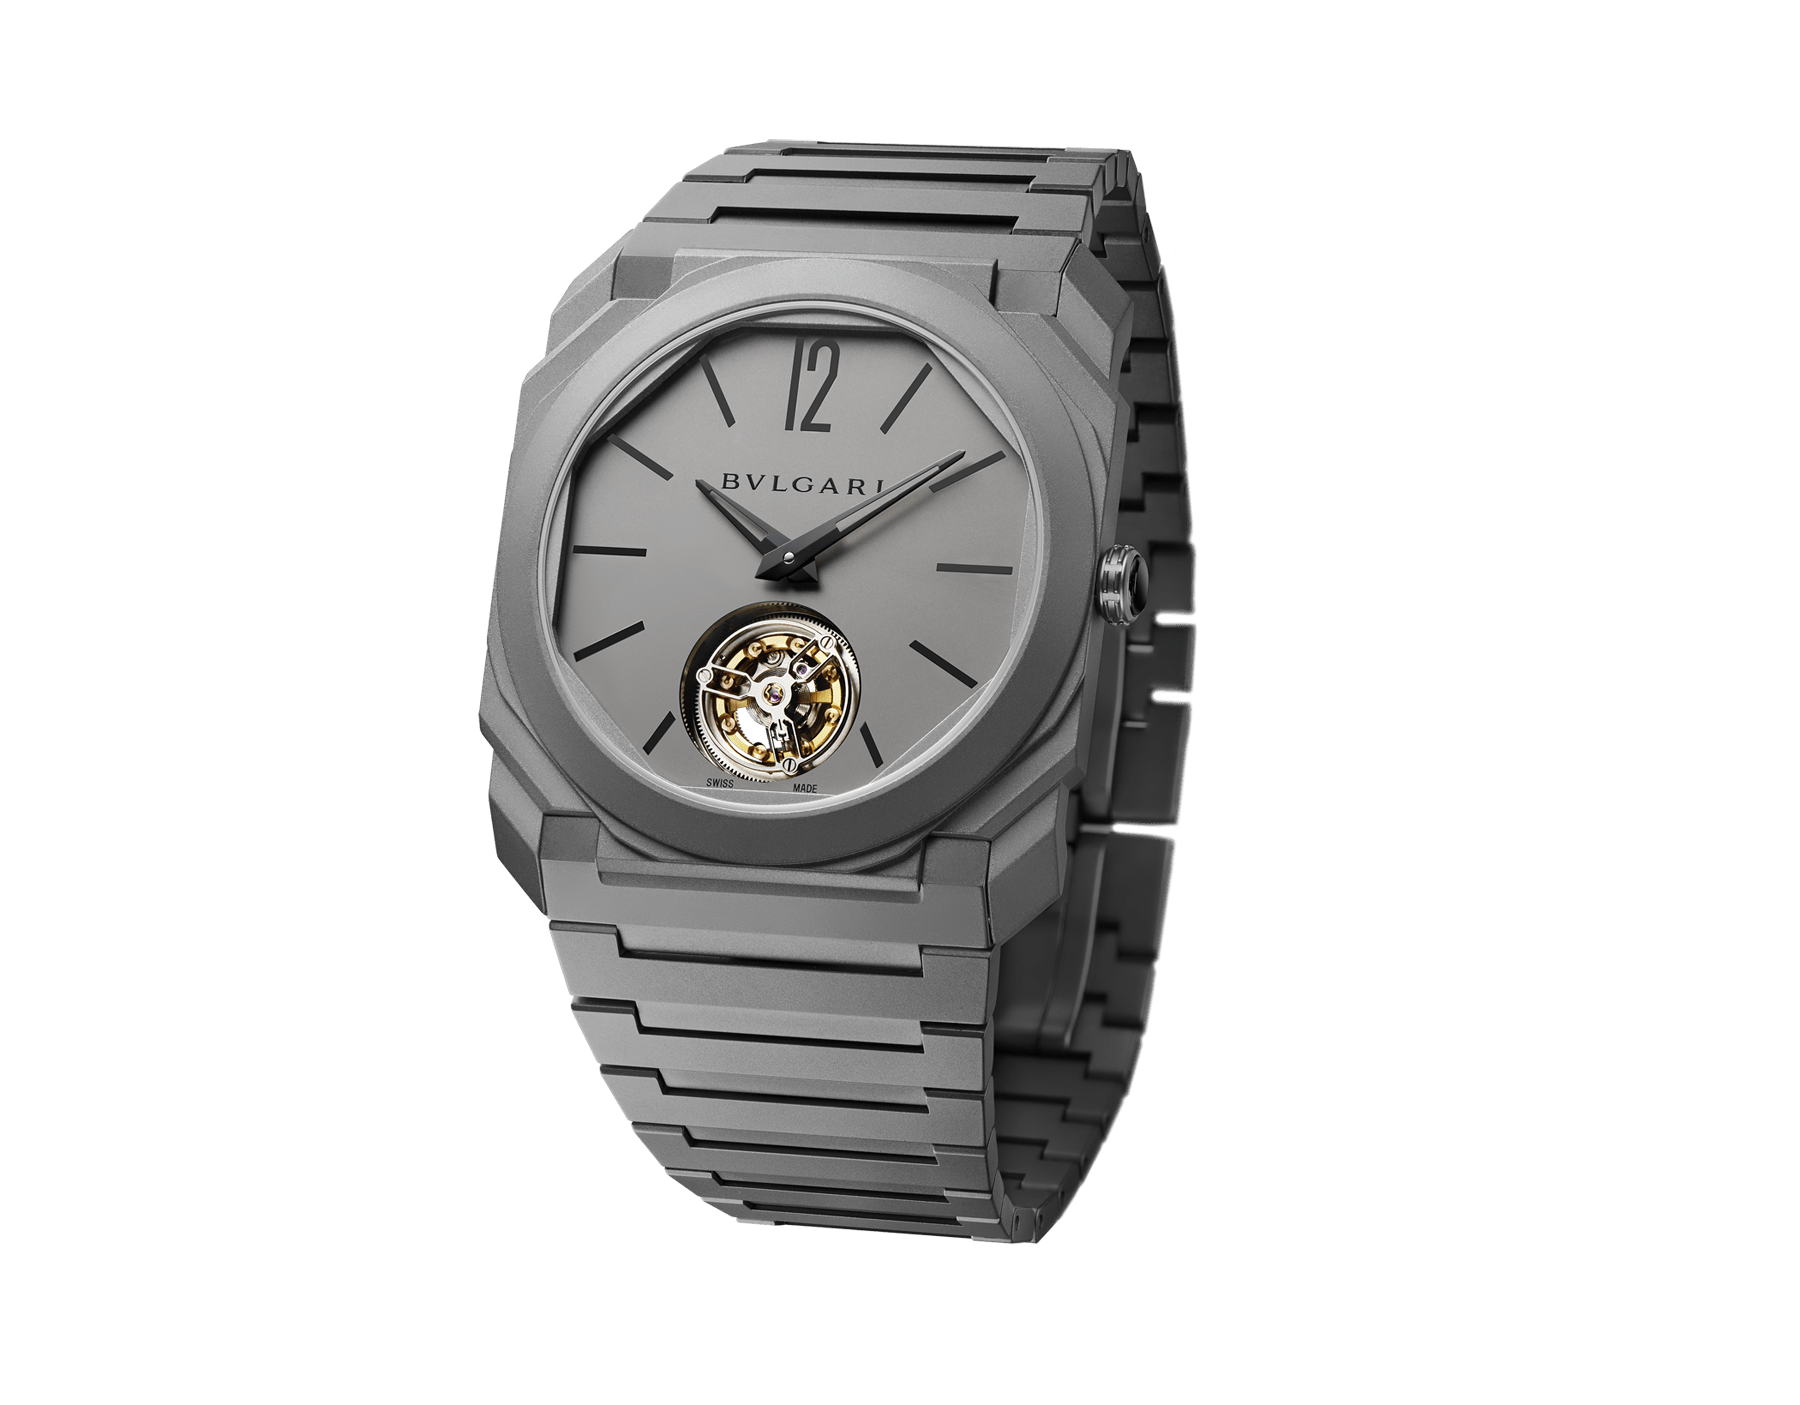 Octo Finissimo Tourbillon watch with mechanical manufacture movement, flying see-through tourbillon, manual winding, sandblasted titanium ultra-thin case, dial and bracelet 103016 image 1